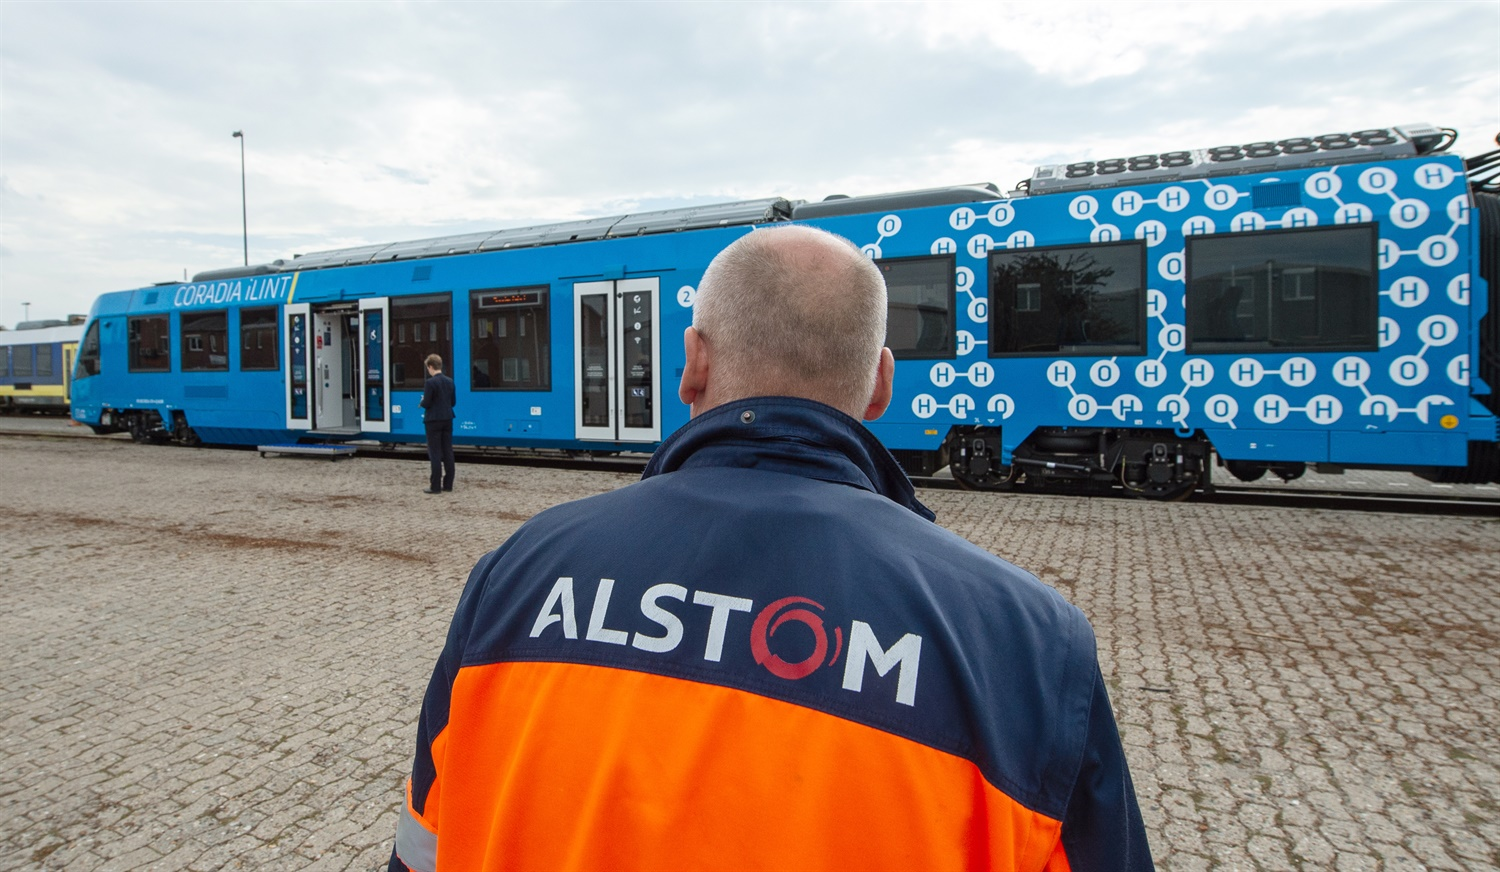 Siemens and Alstom prepared to walk away from merger if EU Commission rejects concessions